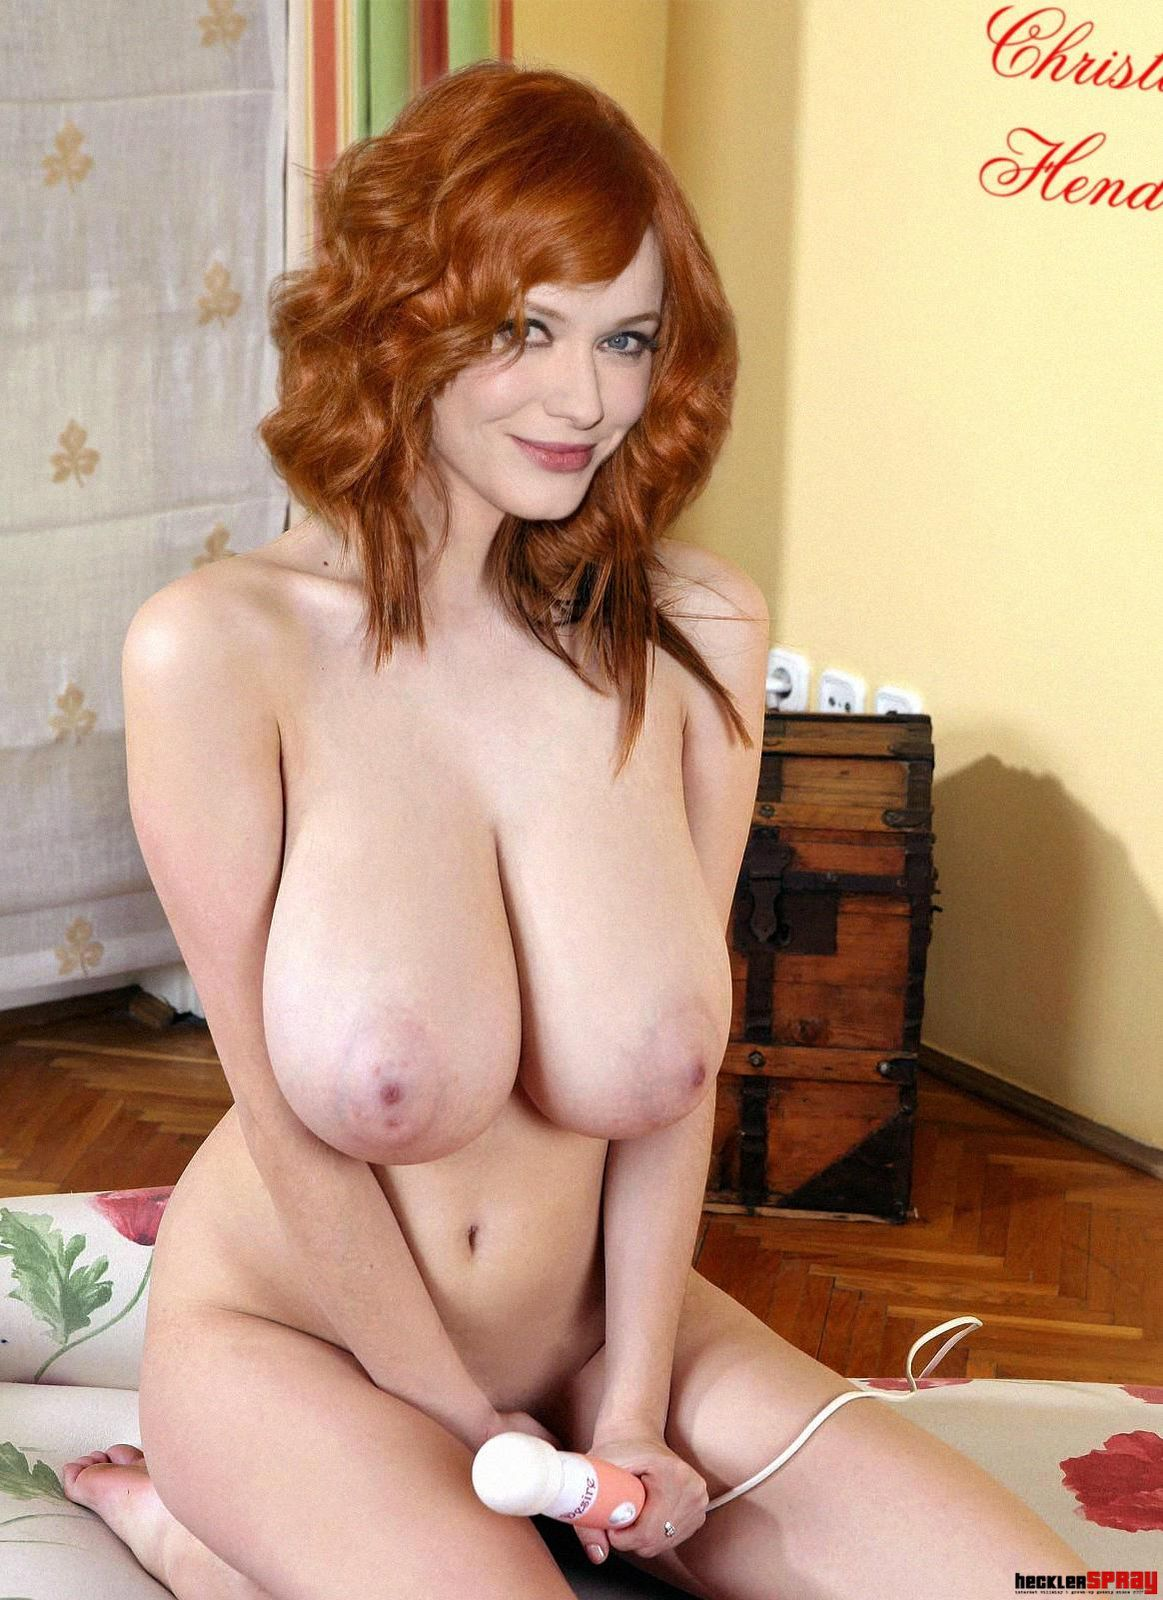 lookalike Christina hendricks porn